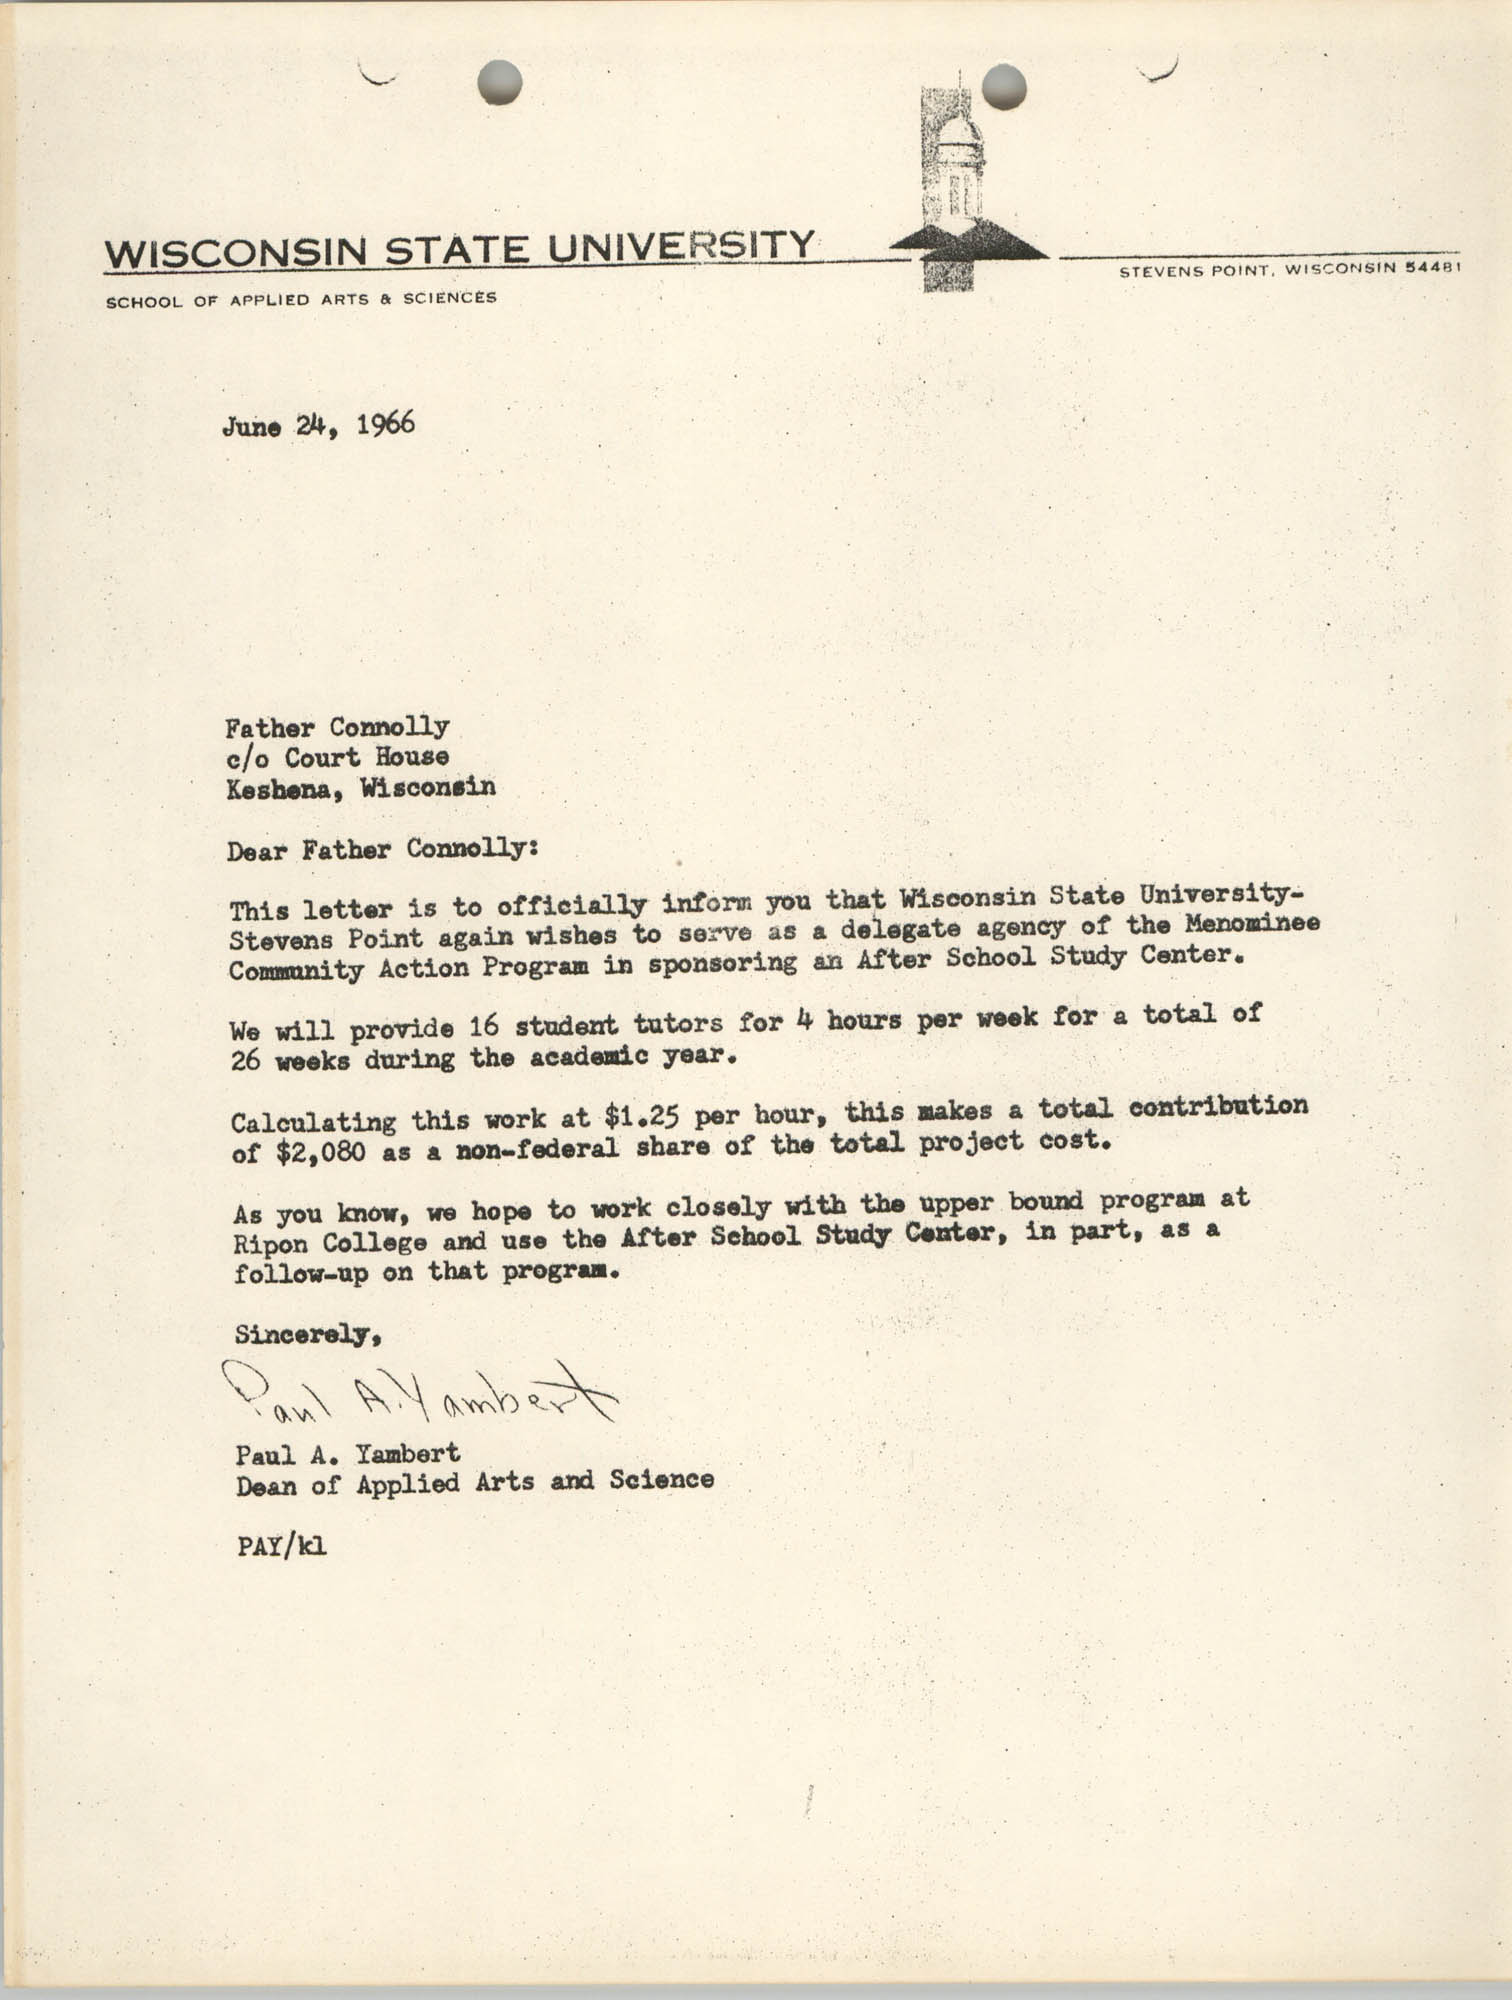 Letter from Paul A. Yambert to Father Connolly, June 24, 1966